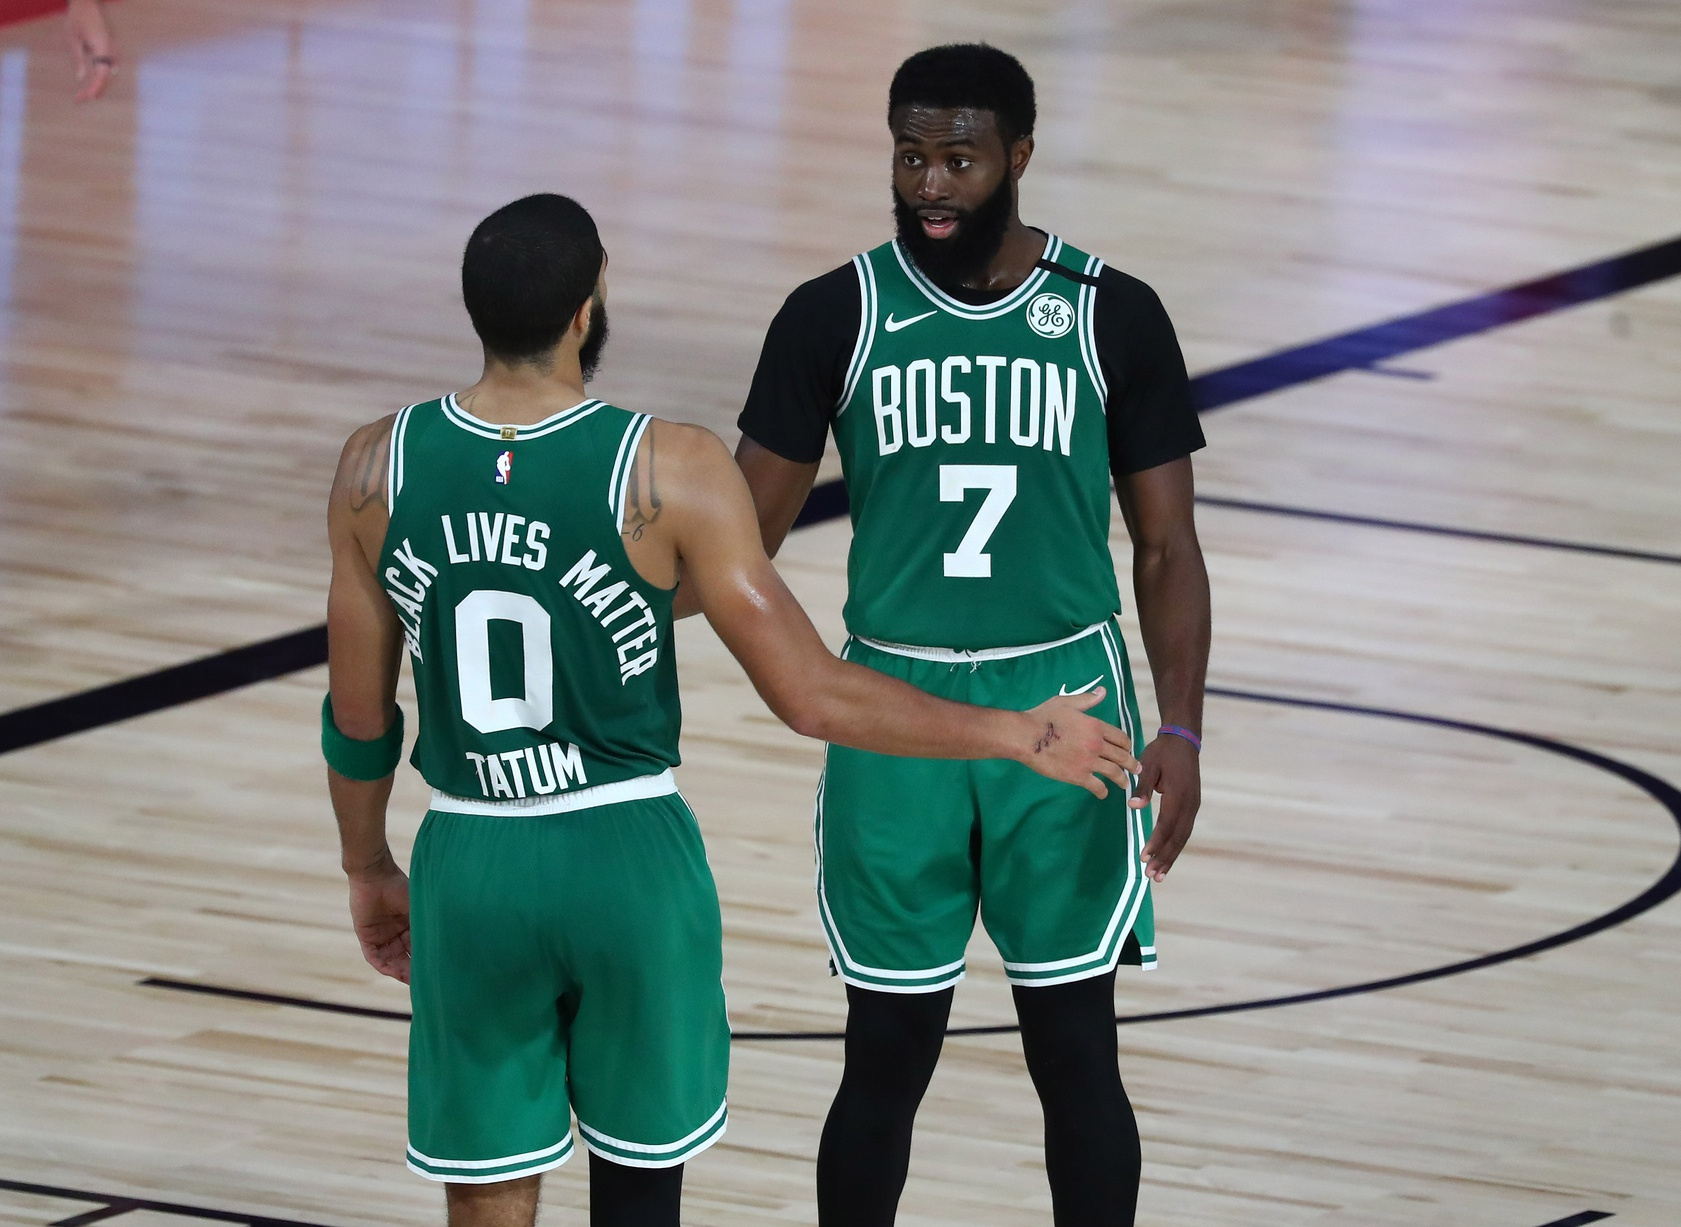 Some random (and useless) stats to make you feel better about the Celtics